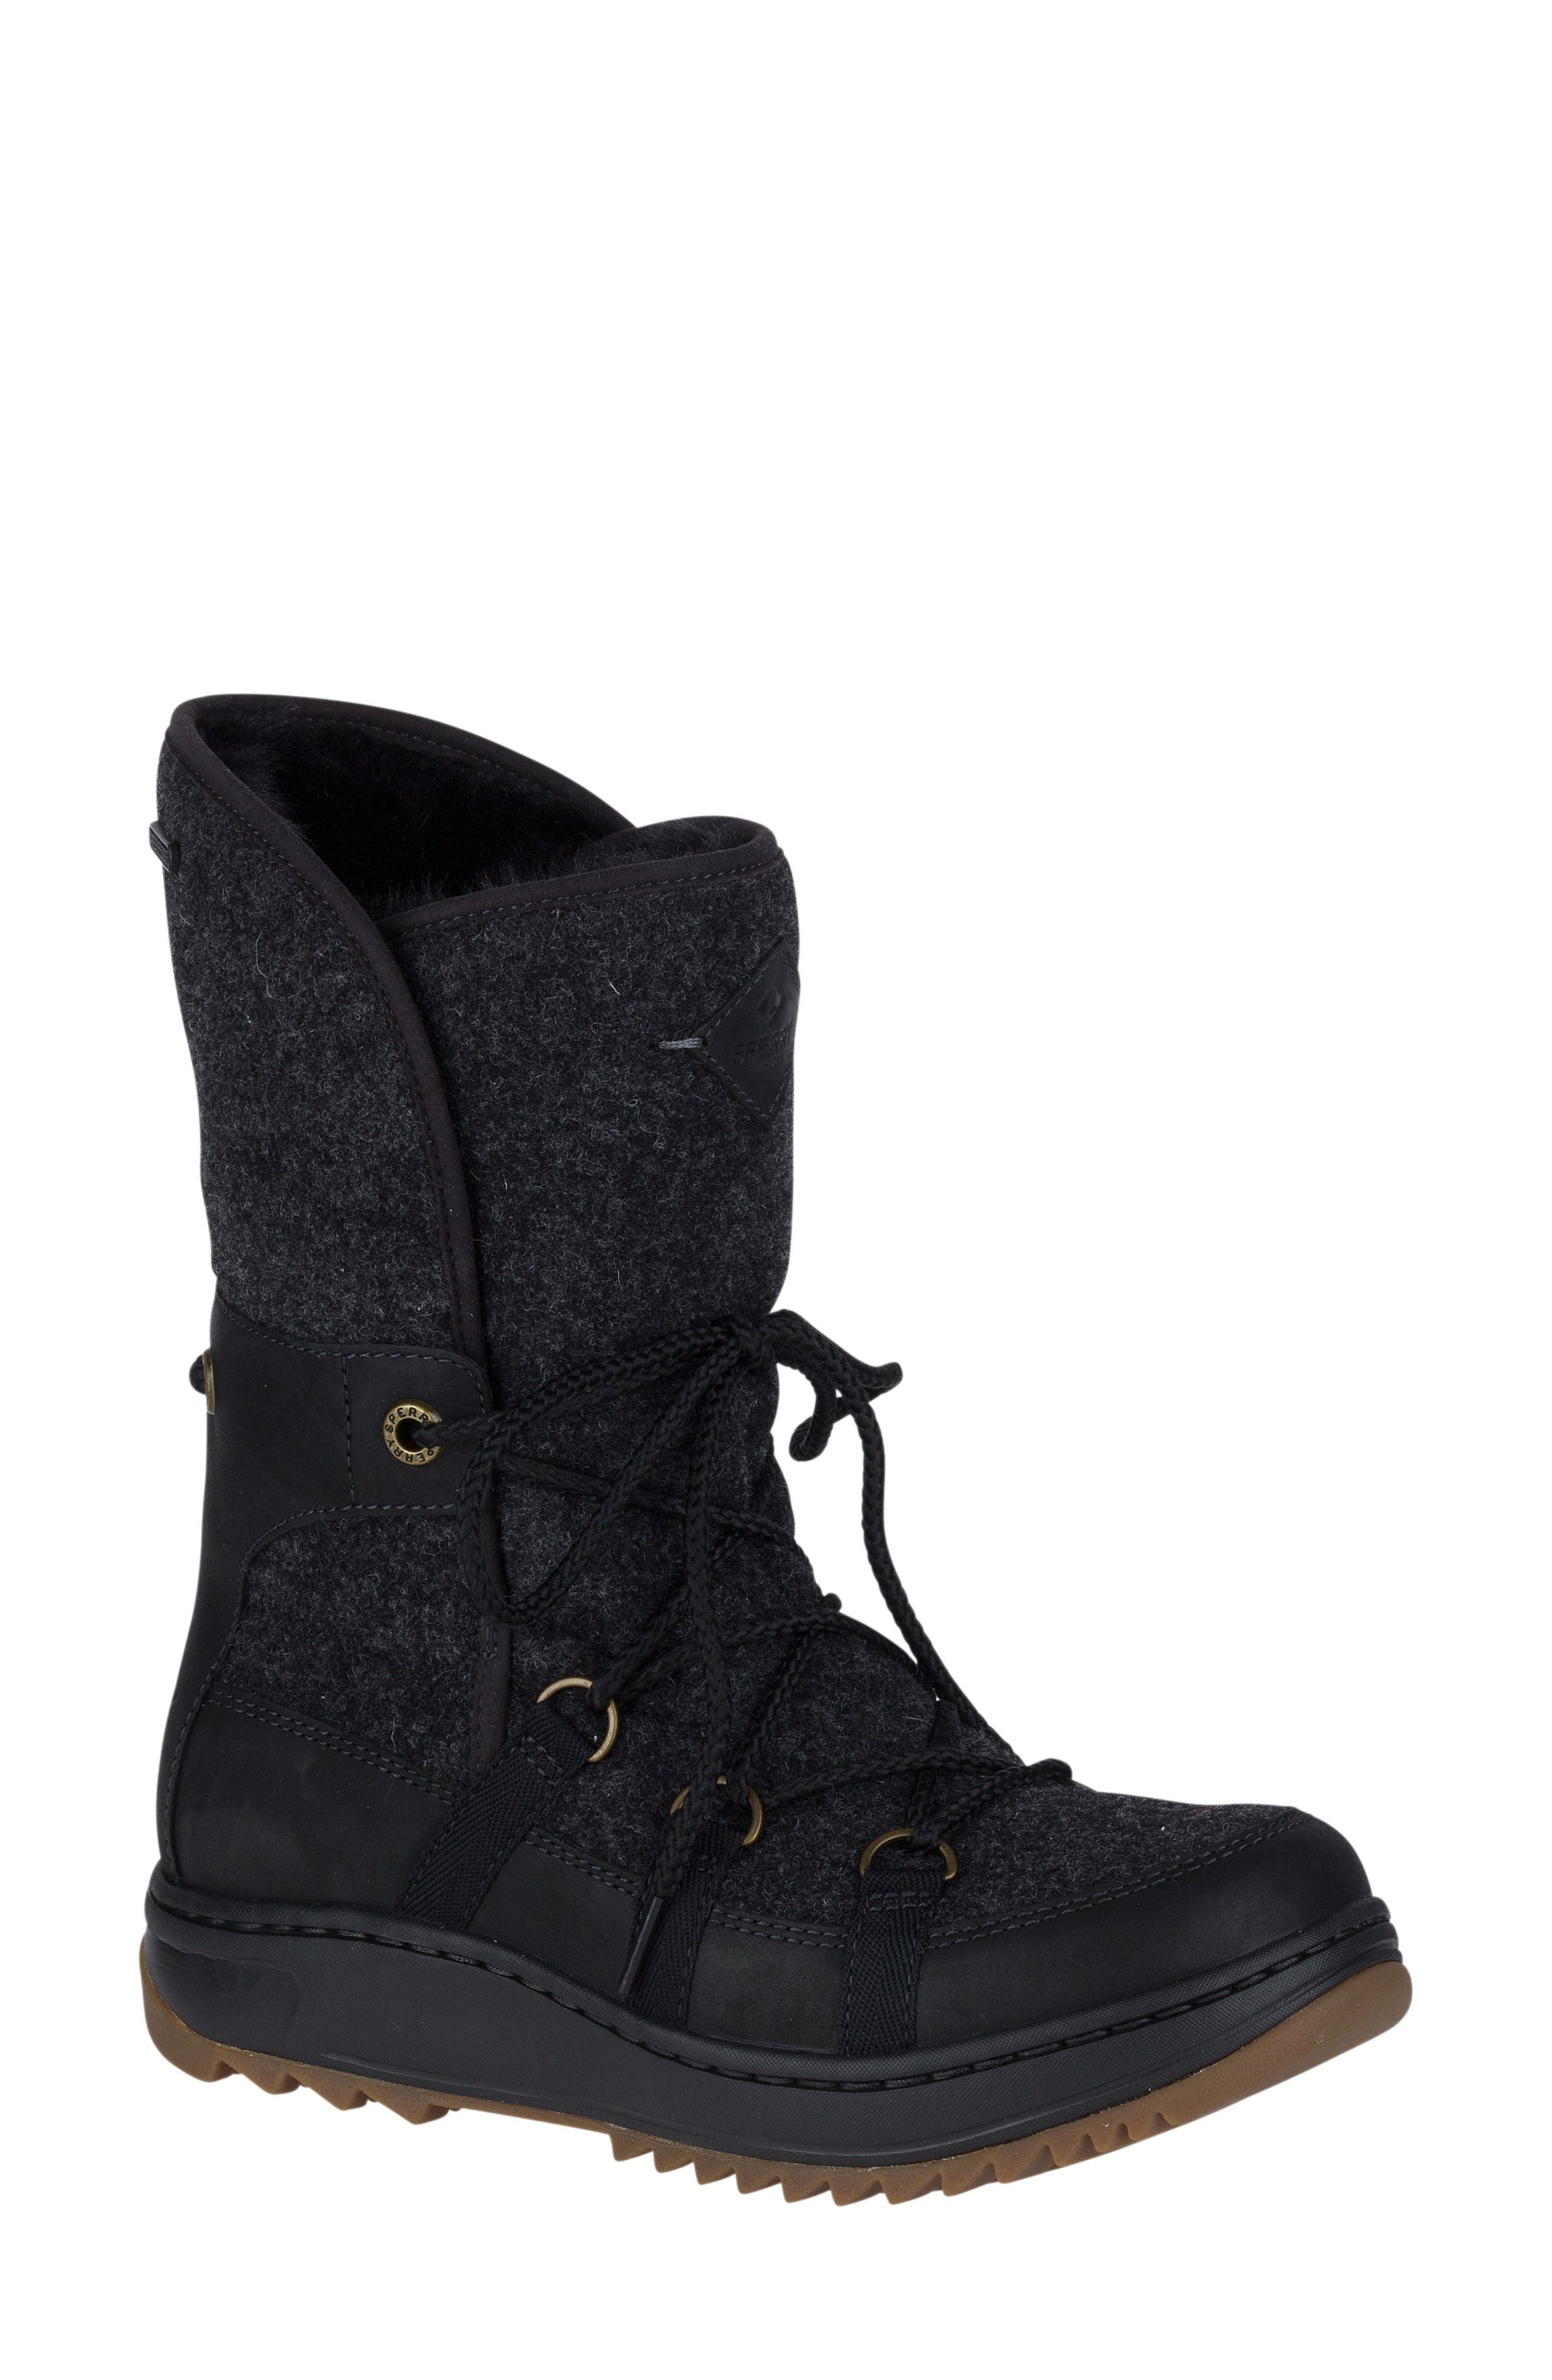 Powder Ice Cap Thinsulate Insulated Water Resistant Boot,                             Main thumbnail 1, color,                             001